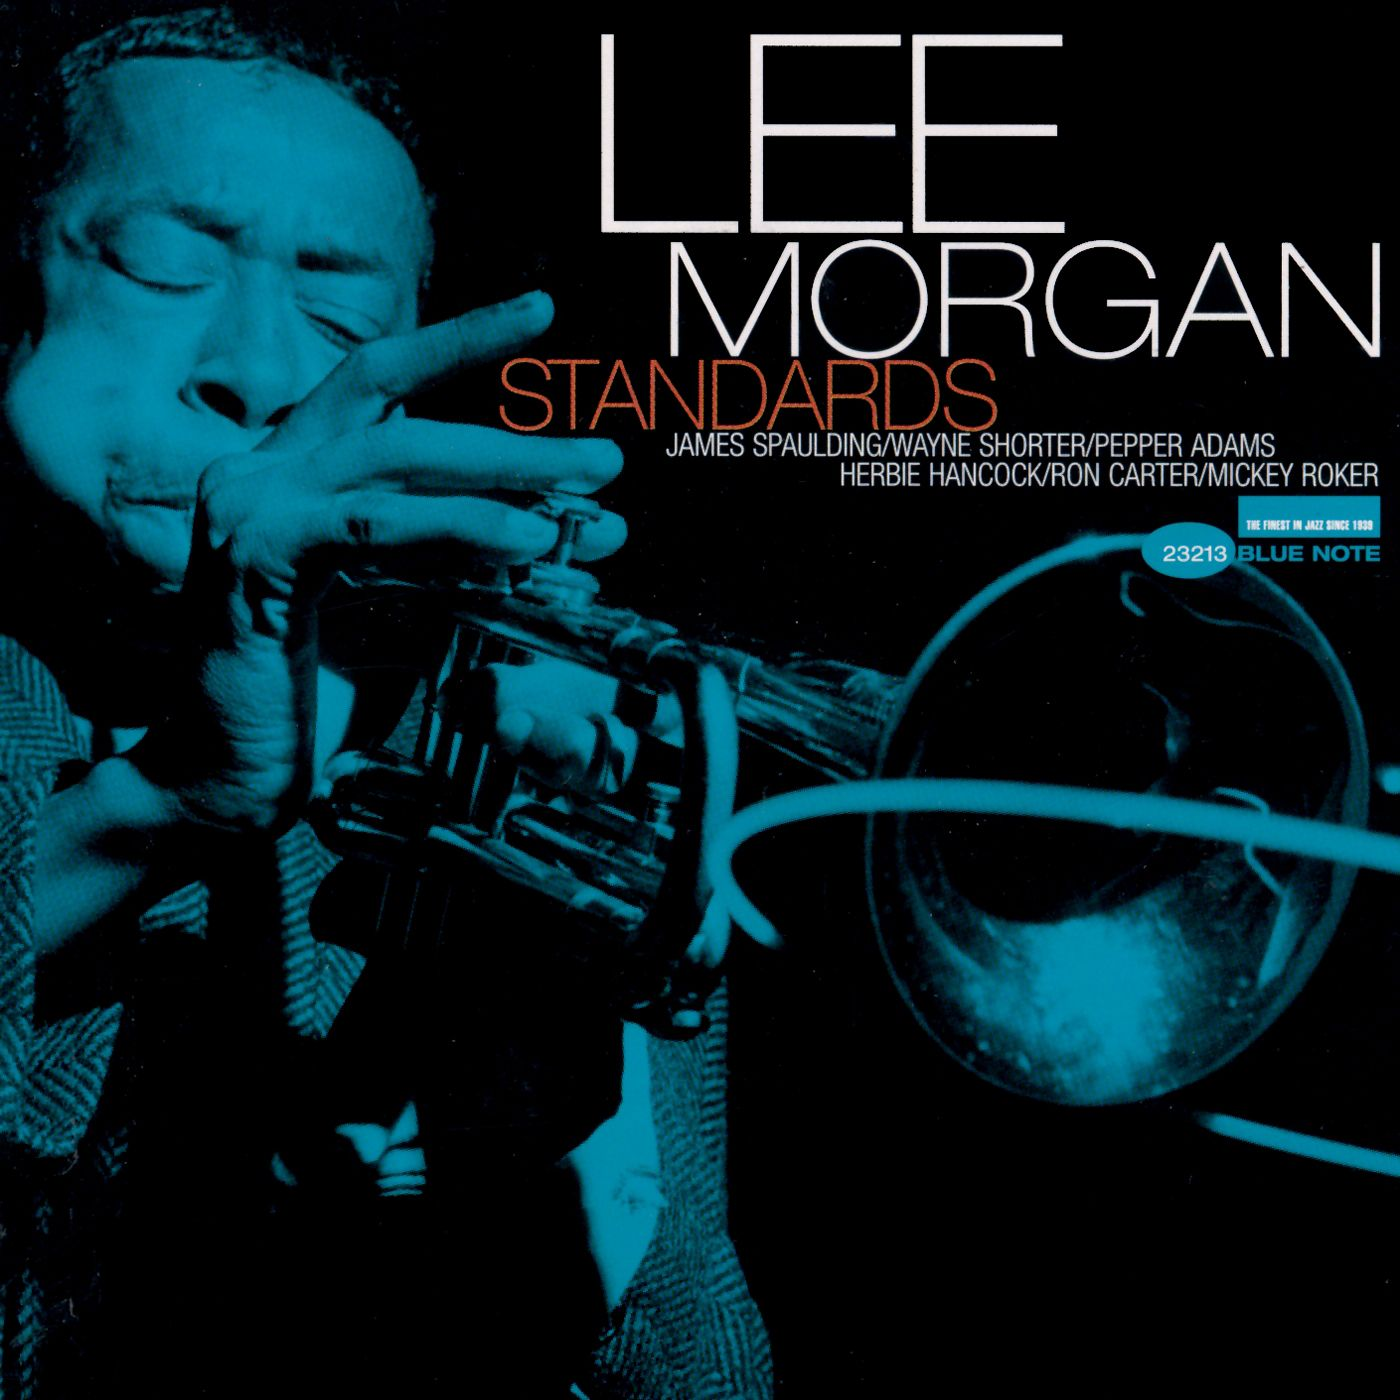 "Blue Note artists from Miles Davis to Dexter Gordon to Lee Morgan interpret the Great American Songbook with our Spotify playlist ""Classic Blue Note Plays Standards"": http://open.spotify.com/user/bluenoterecords/playlist/7qz2ynjZkcoTrJn5pn21px"